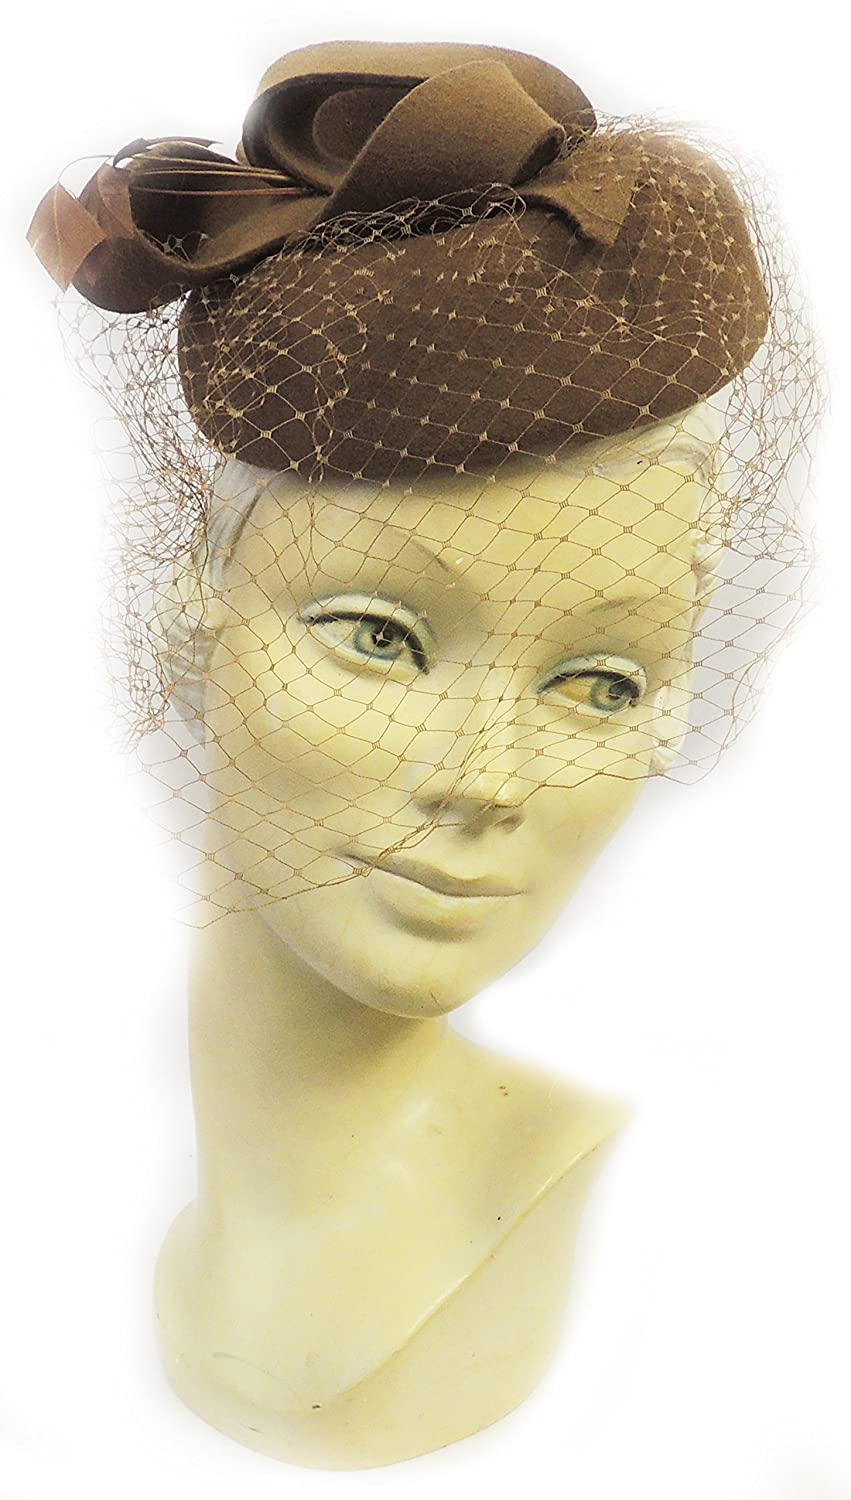 Women's Vintage Hats | Old Fashioned Hats | Retro Hats Viva-la-Rosa New Ladies VTG 1940s 1950s Retro WW2 Wartime Pin-up Pill Box Hat with Veil £29.95 AT vintagedancer.com